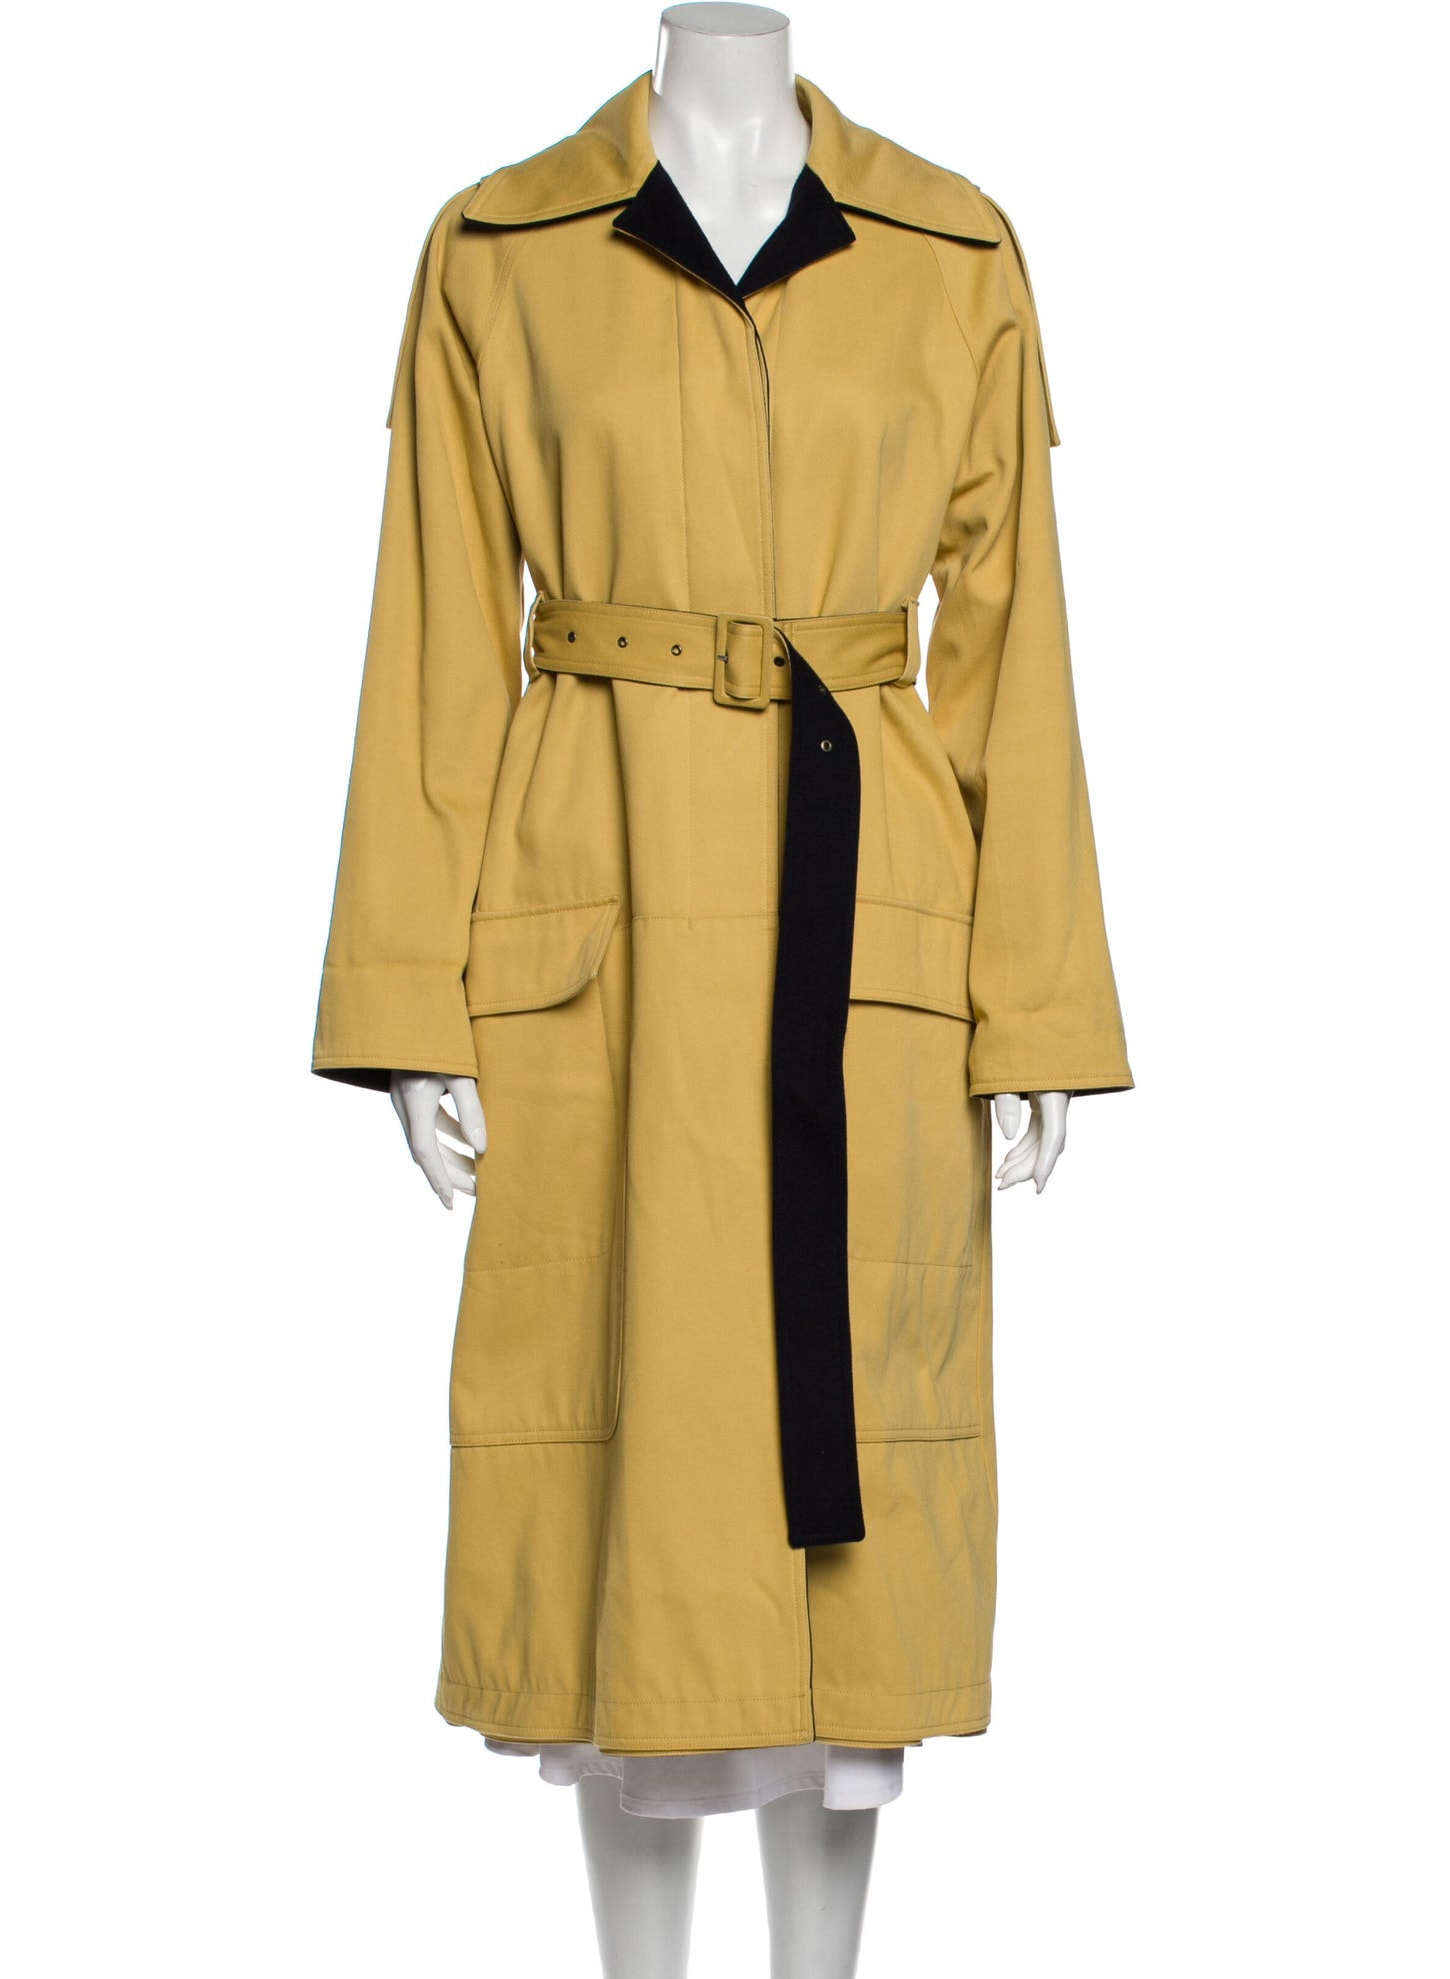 CELINE 2016 Trench Coat